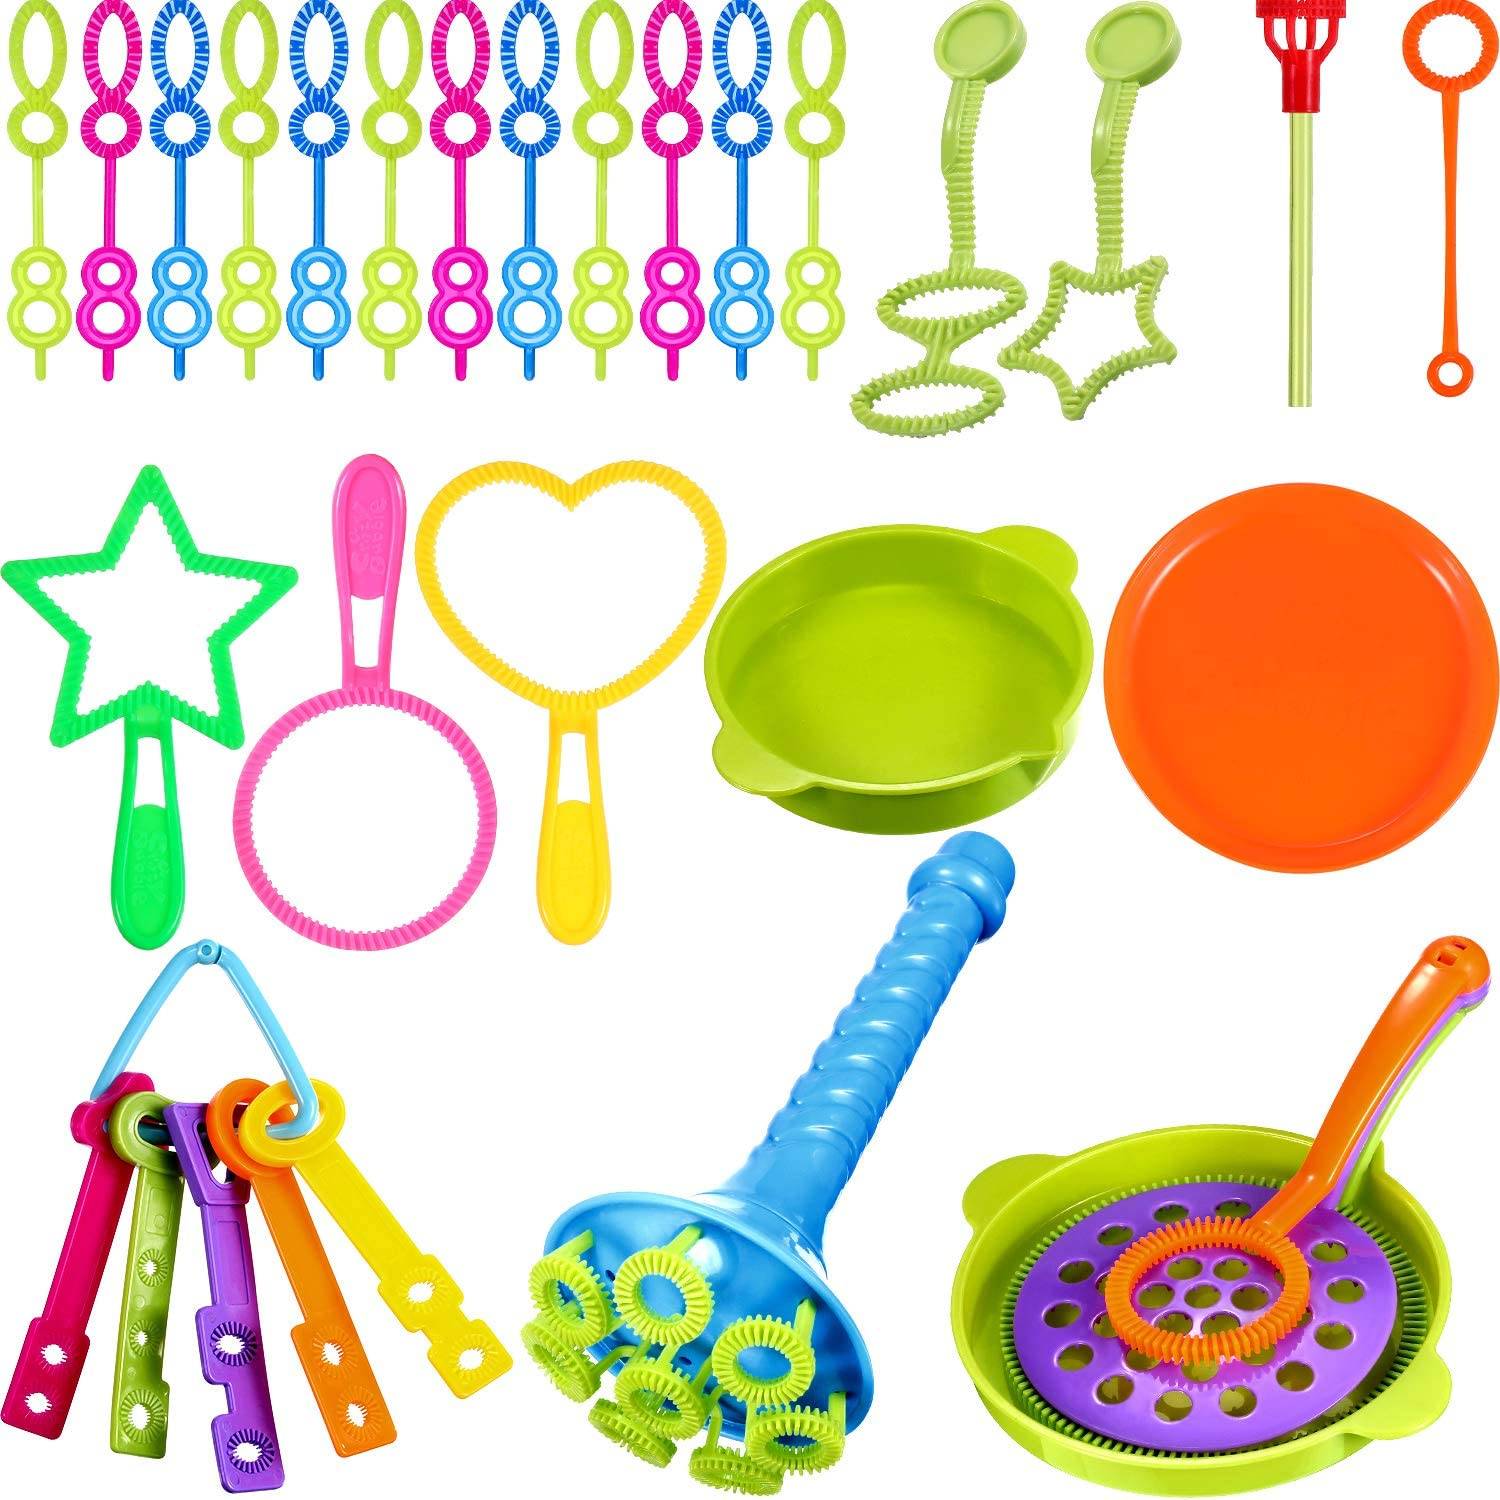 BBTO 39 Pieces Colorful Multihole Bubble Toys Bubble Making Wand with Dipping Dish for Kids